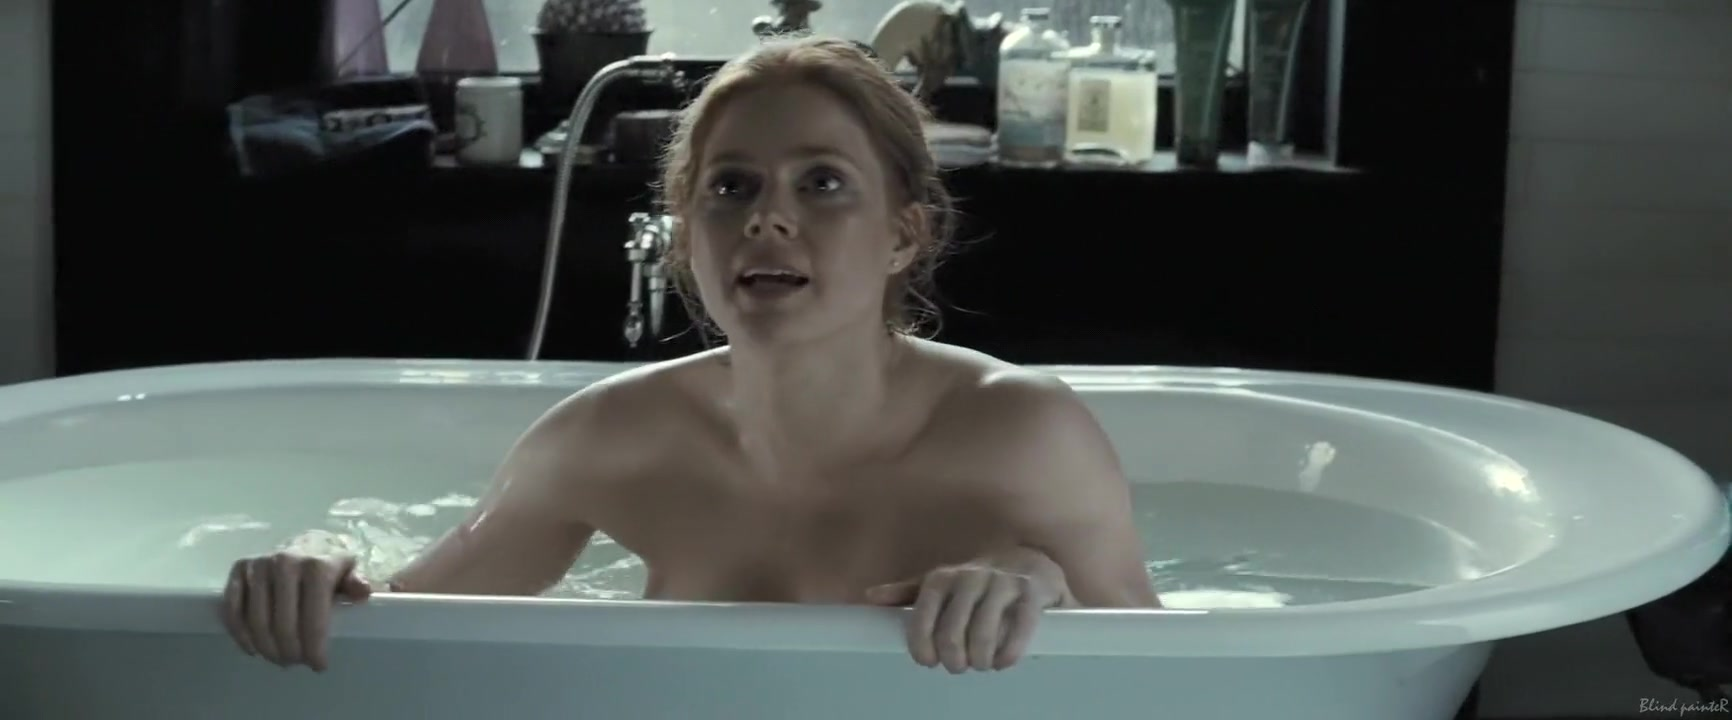 Batman v Superman Dawn of Justice (2016) Amy Adams naked latin girl videos